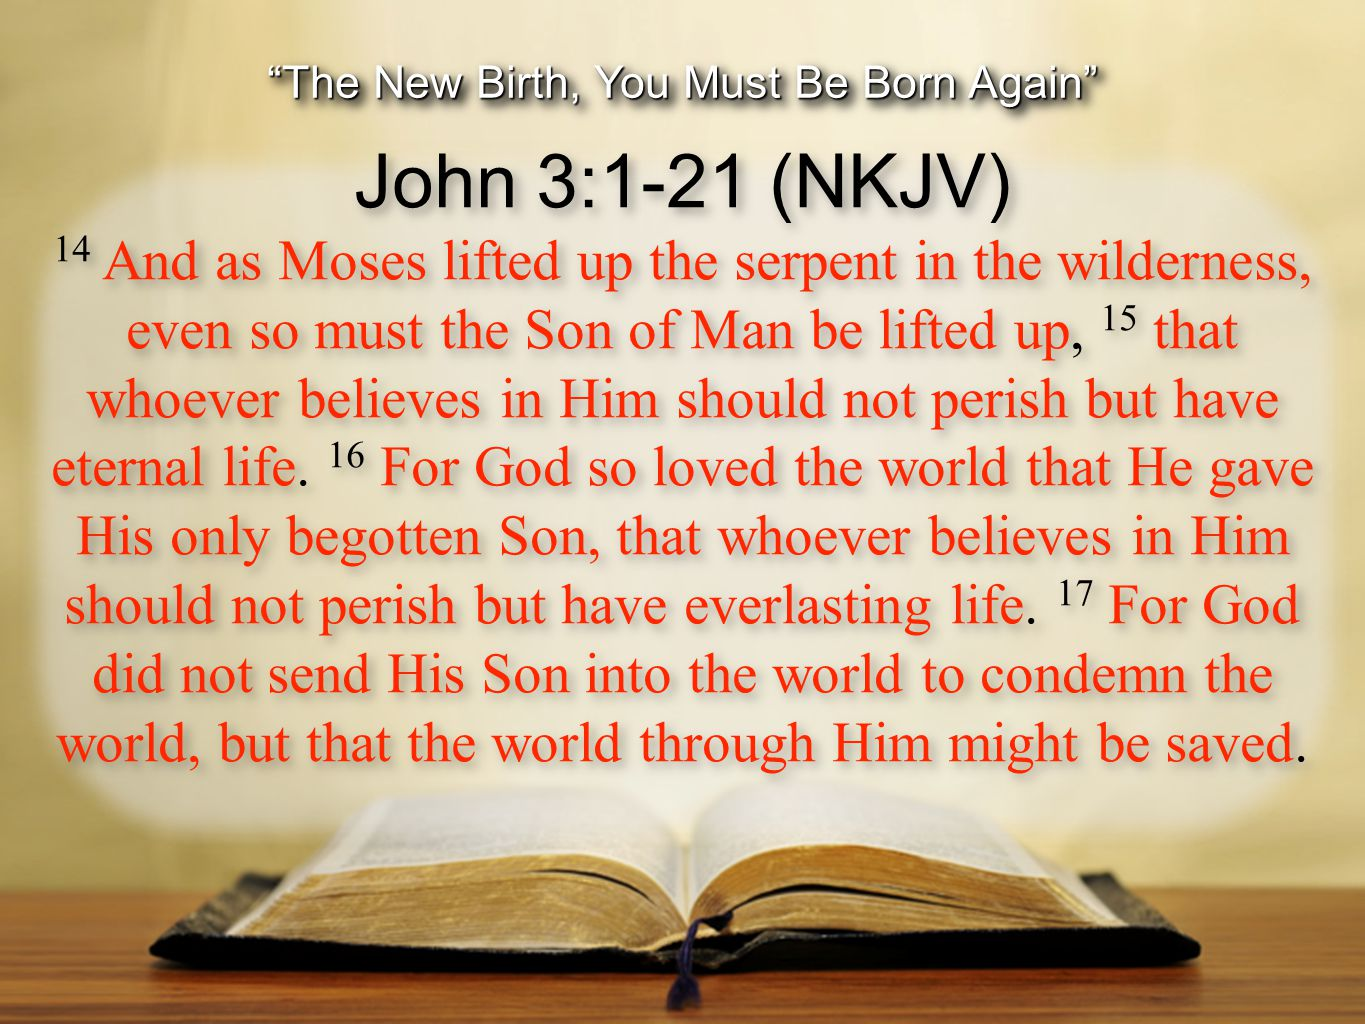 The New Birth, You Must Be Born Again John 3:1-21 (NKJV) 18 He who believes in Him is not condemned; but he who does not believe is condemned already, because he has not believed in the name of the only begotten Son of God.